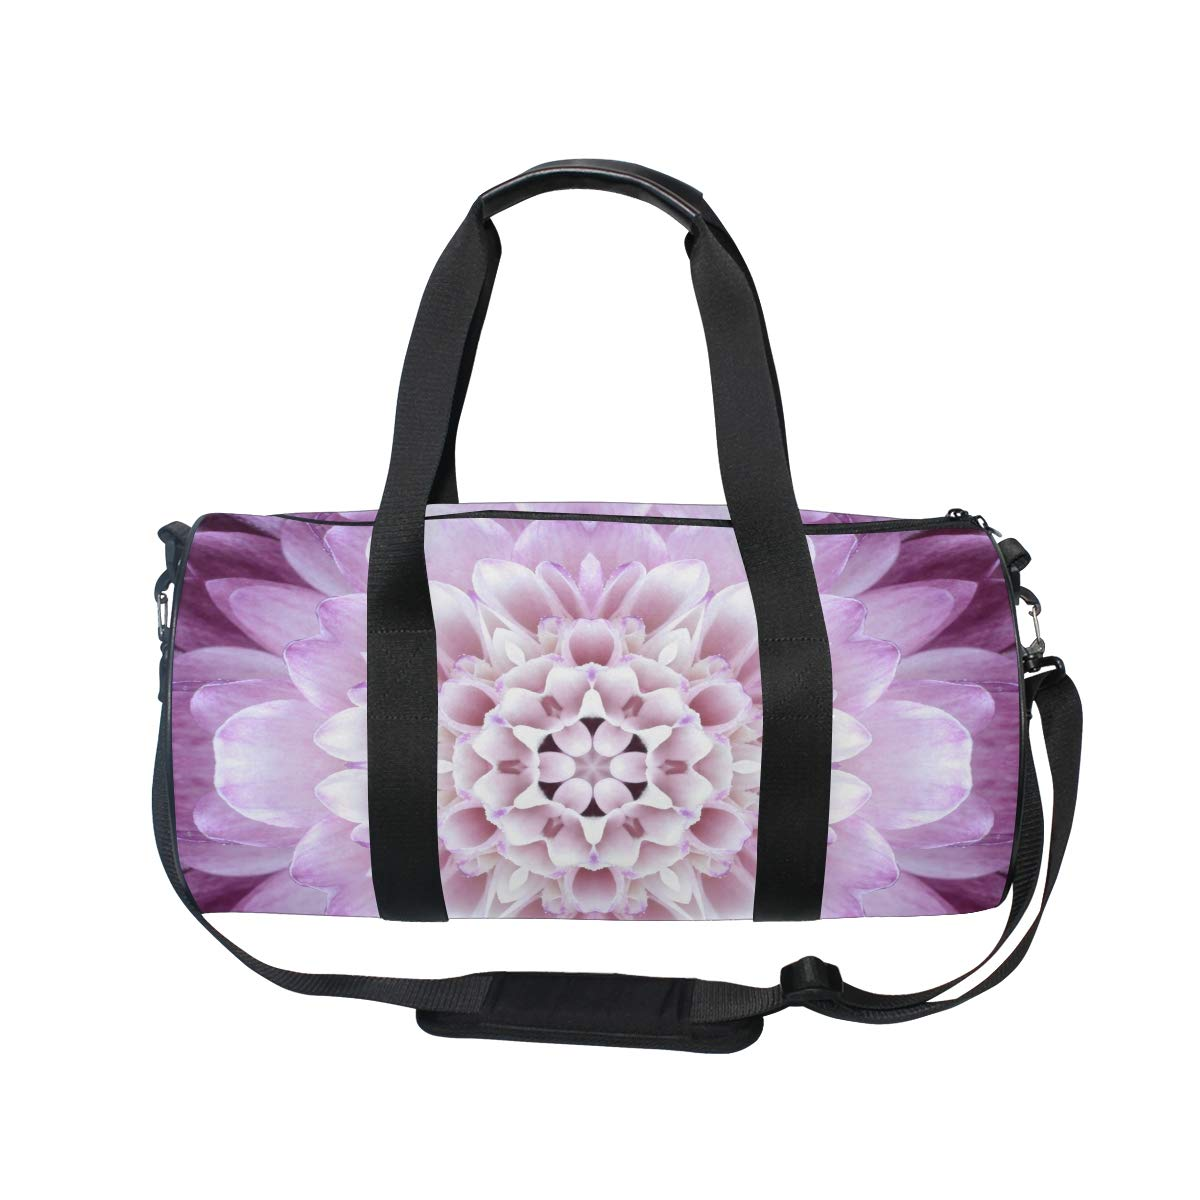 Mandala Bohemian Yoga Sports Gym Duffle Bags Tote Sling Travel Bag Patterned Canvas with Pocket and Zipper For Men Women Bag by EVERUI (Image #2)